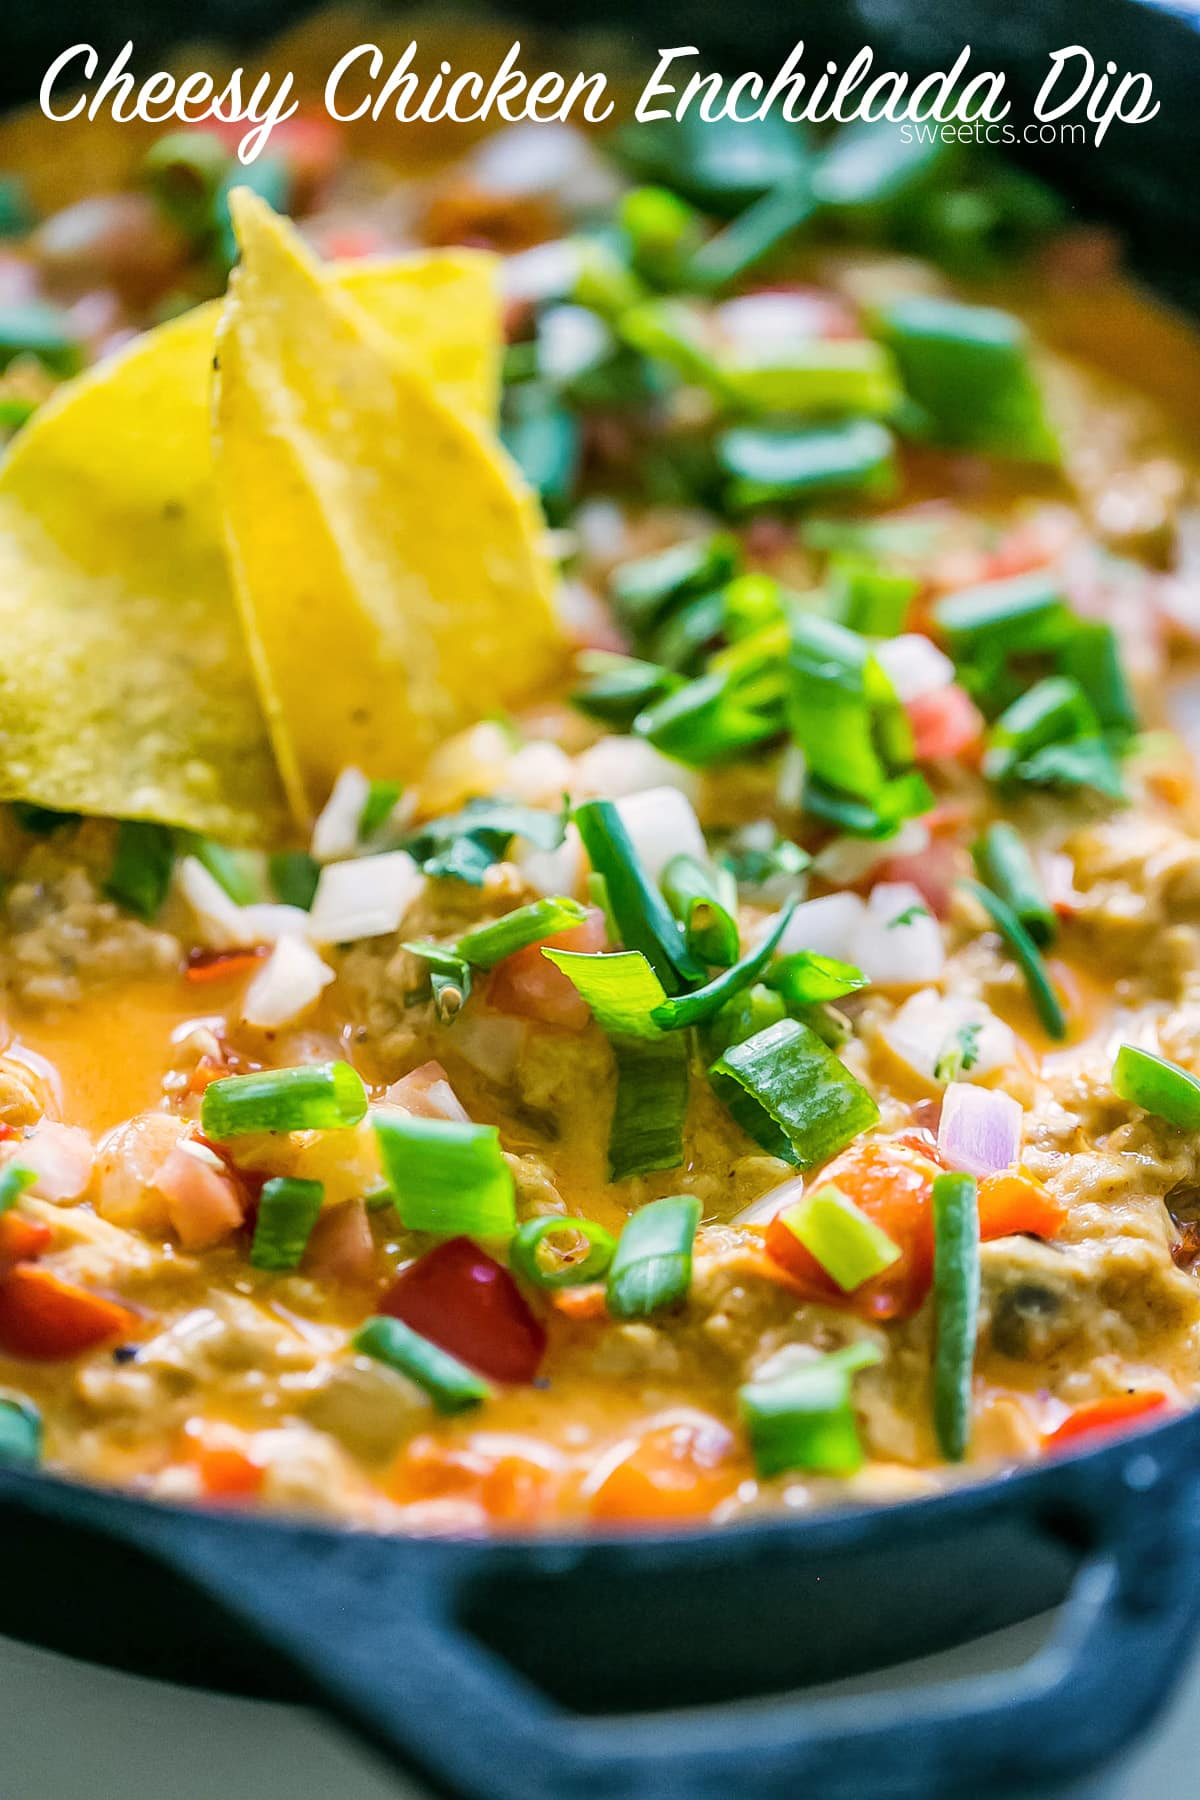 This cheesy chicken enchilada dip is full of flavor and so easy!